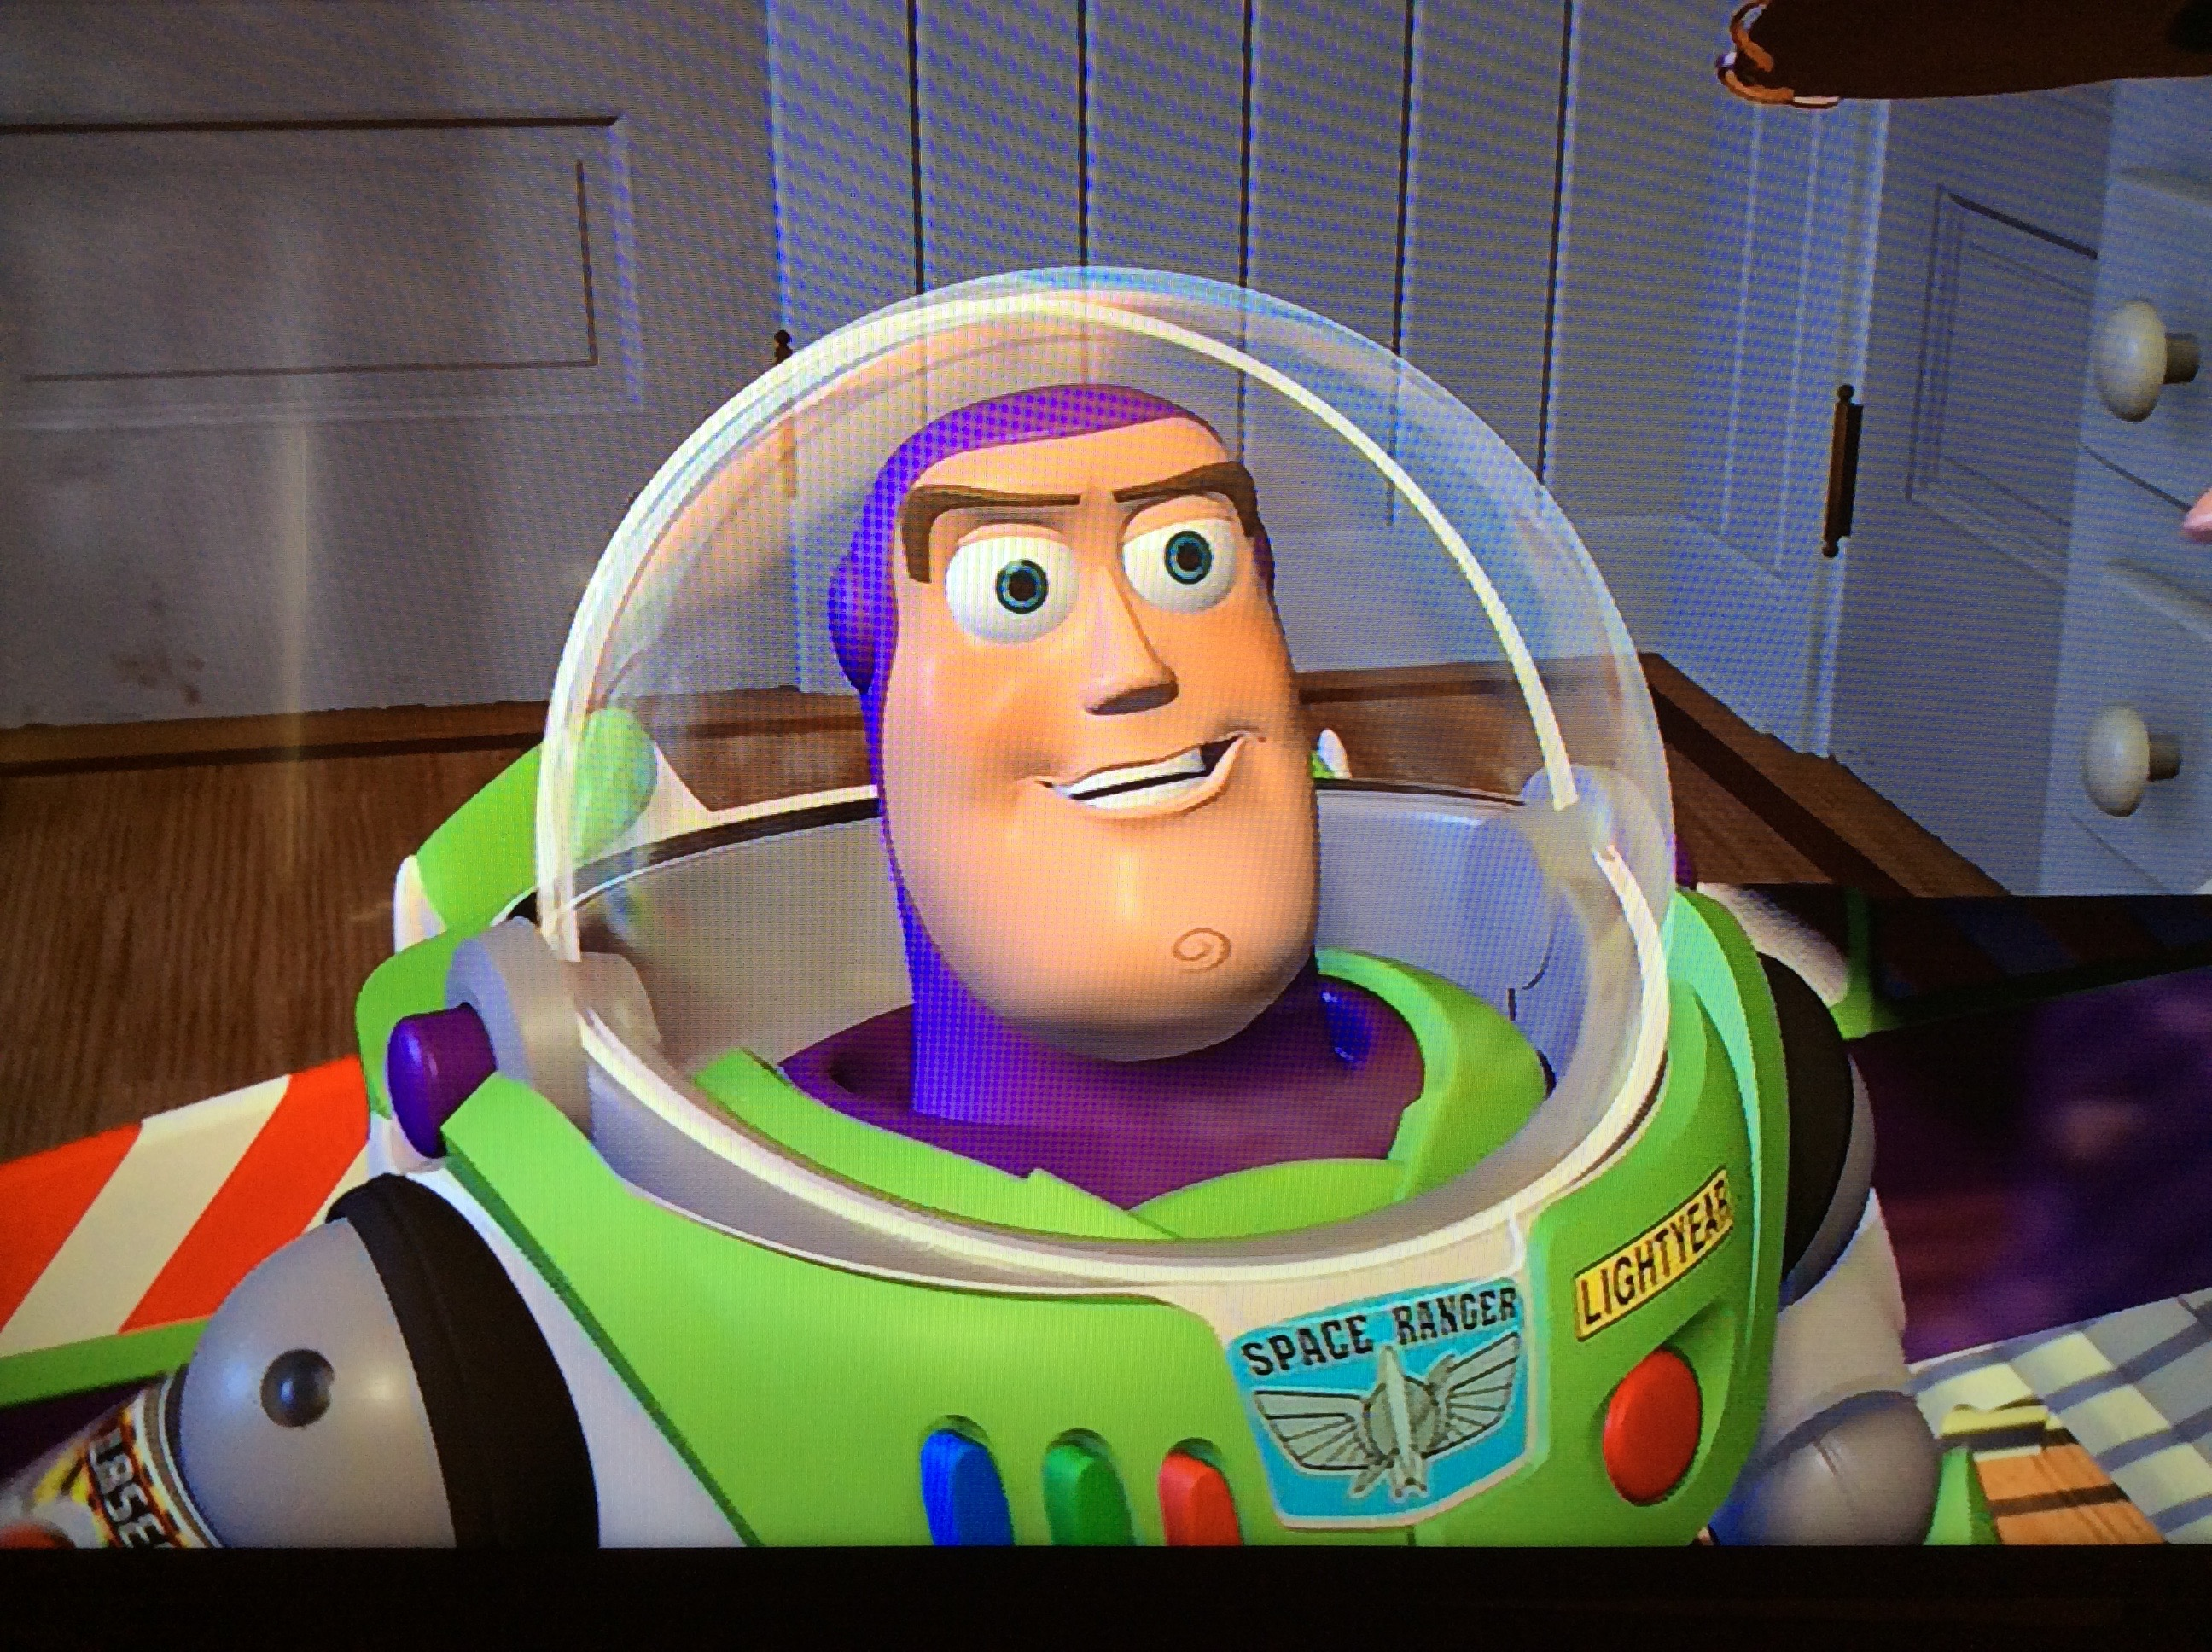 http://img1.wikia.nocookie.net/__cb20130101220439/disney/images/e/e3/Buzz_Lightyear_out_of_the_box.jpg